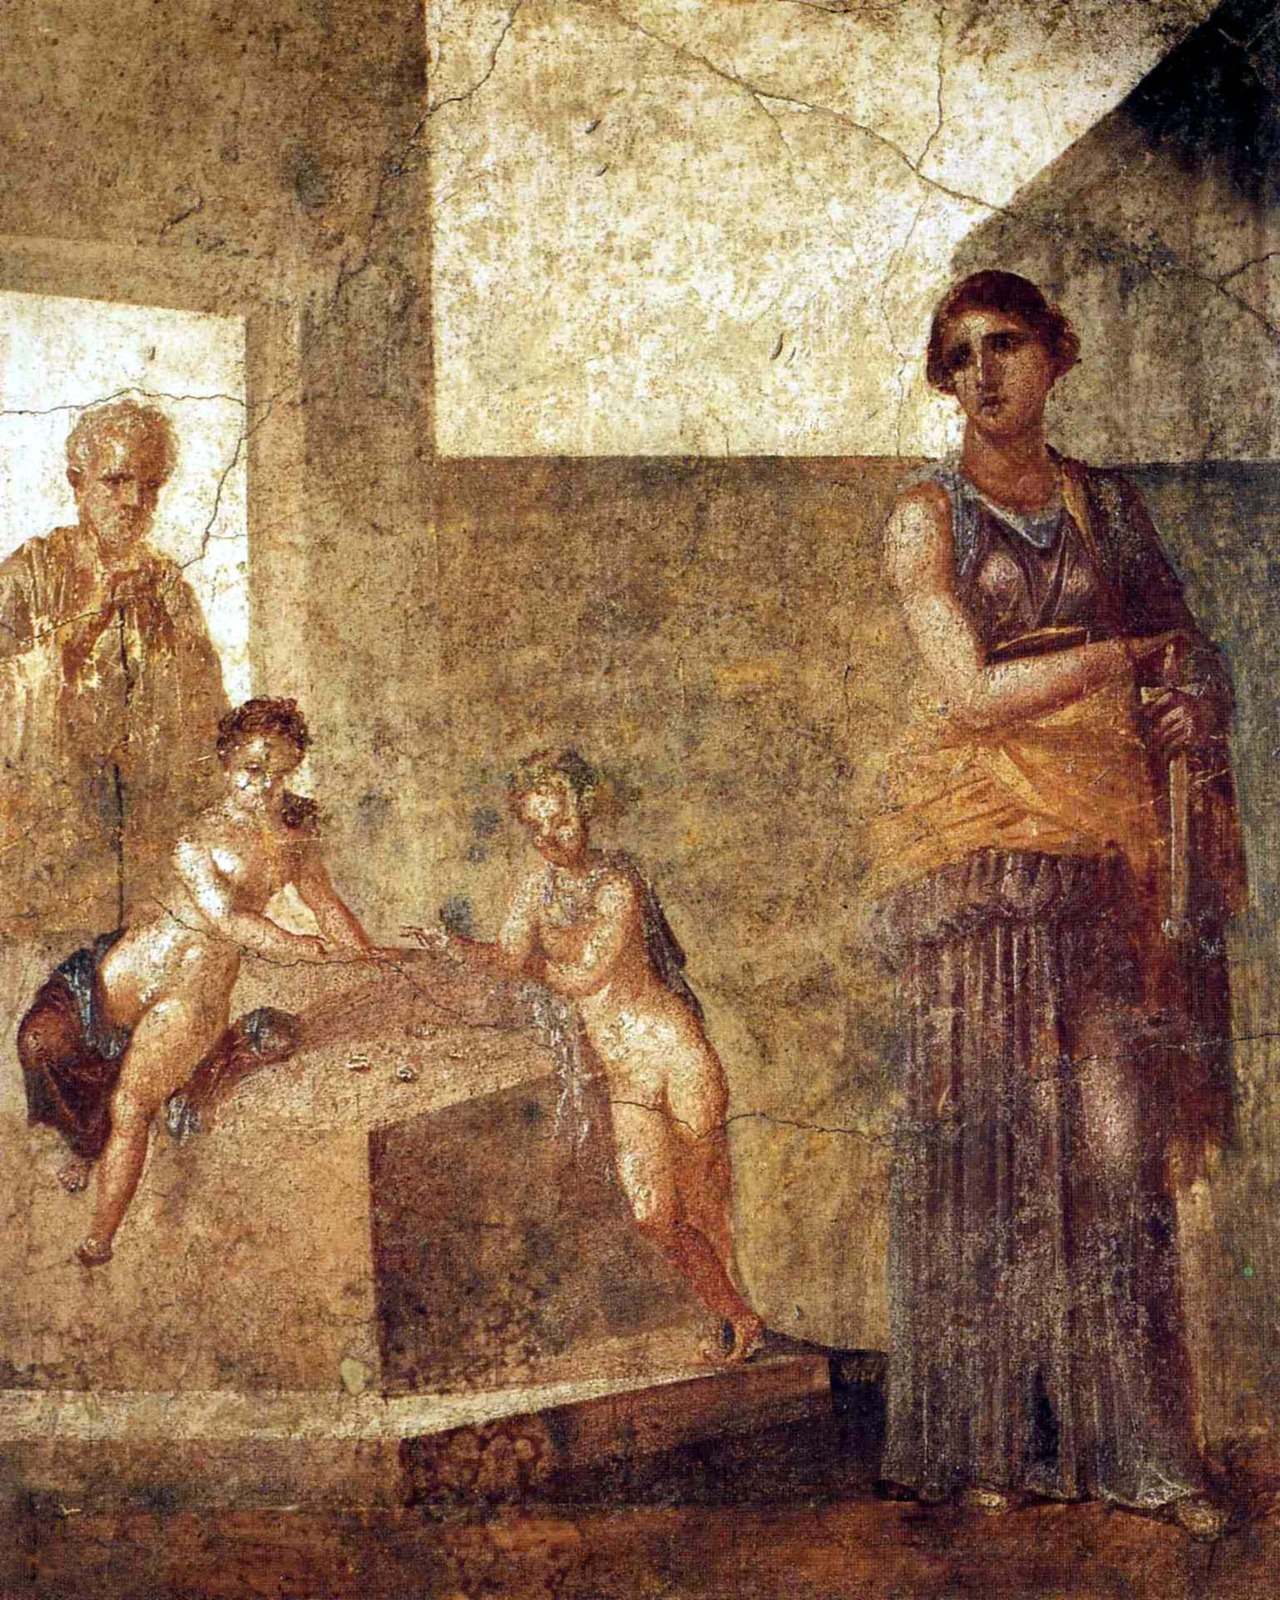 triglifos-y-metopas:  Medea and her children House of the Dioscuri Pompeii, Italy [Museo Archeologico Nazionale di Napoli]